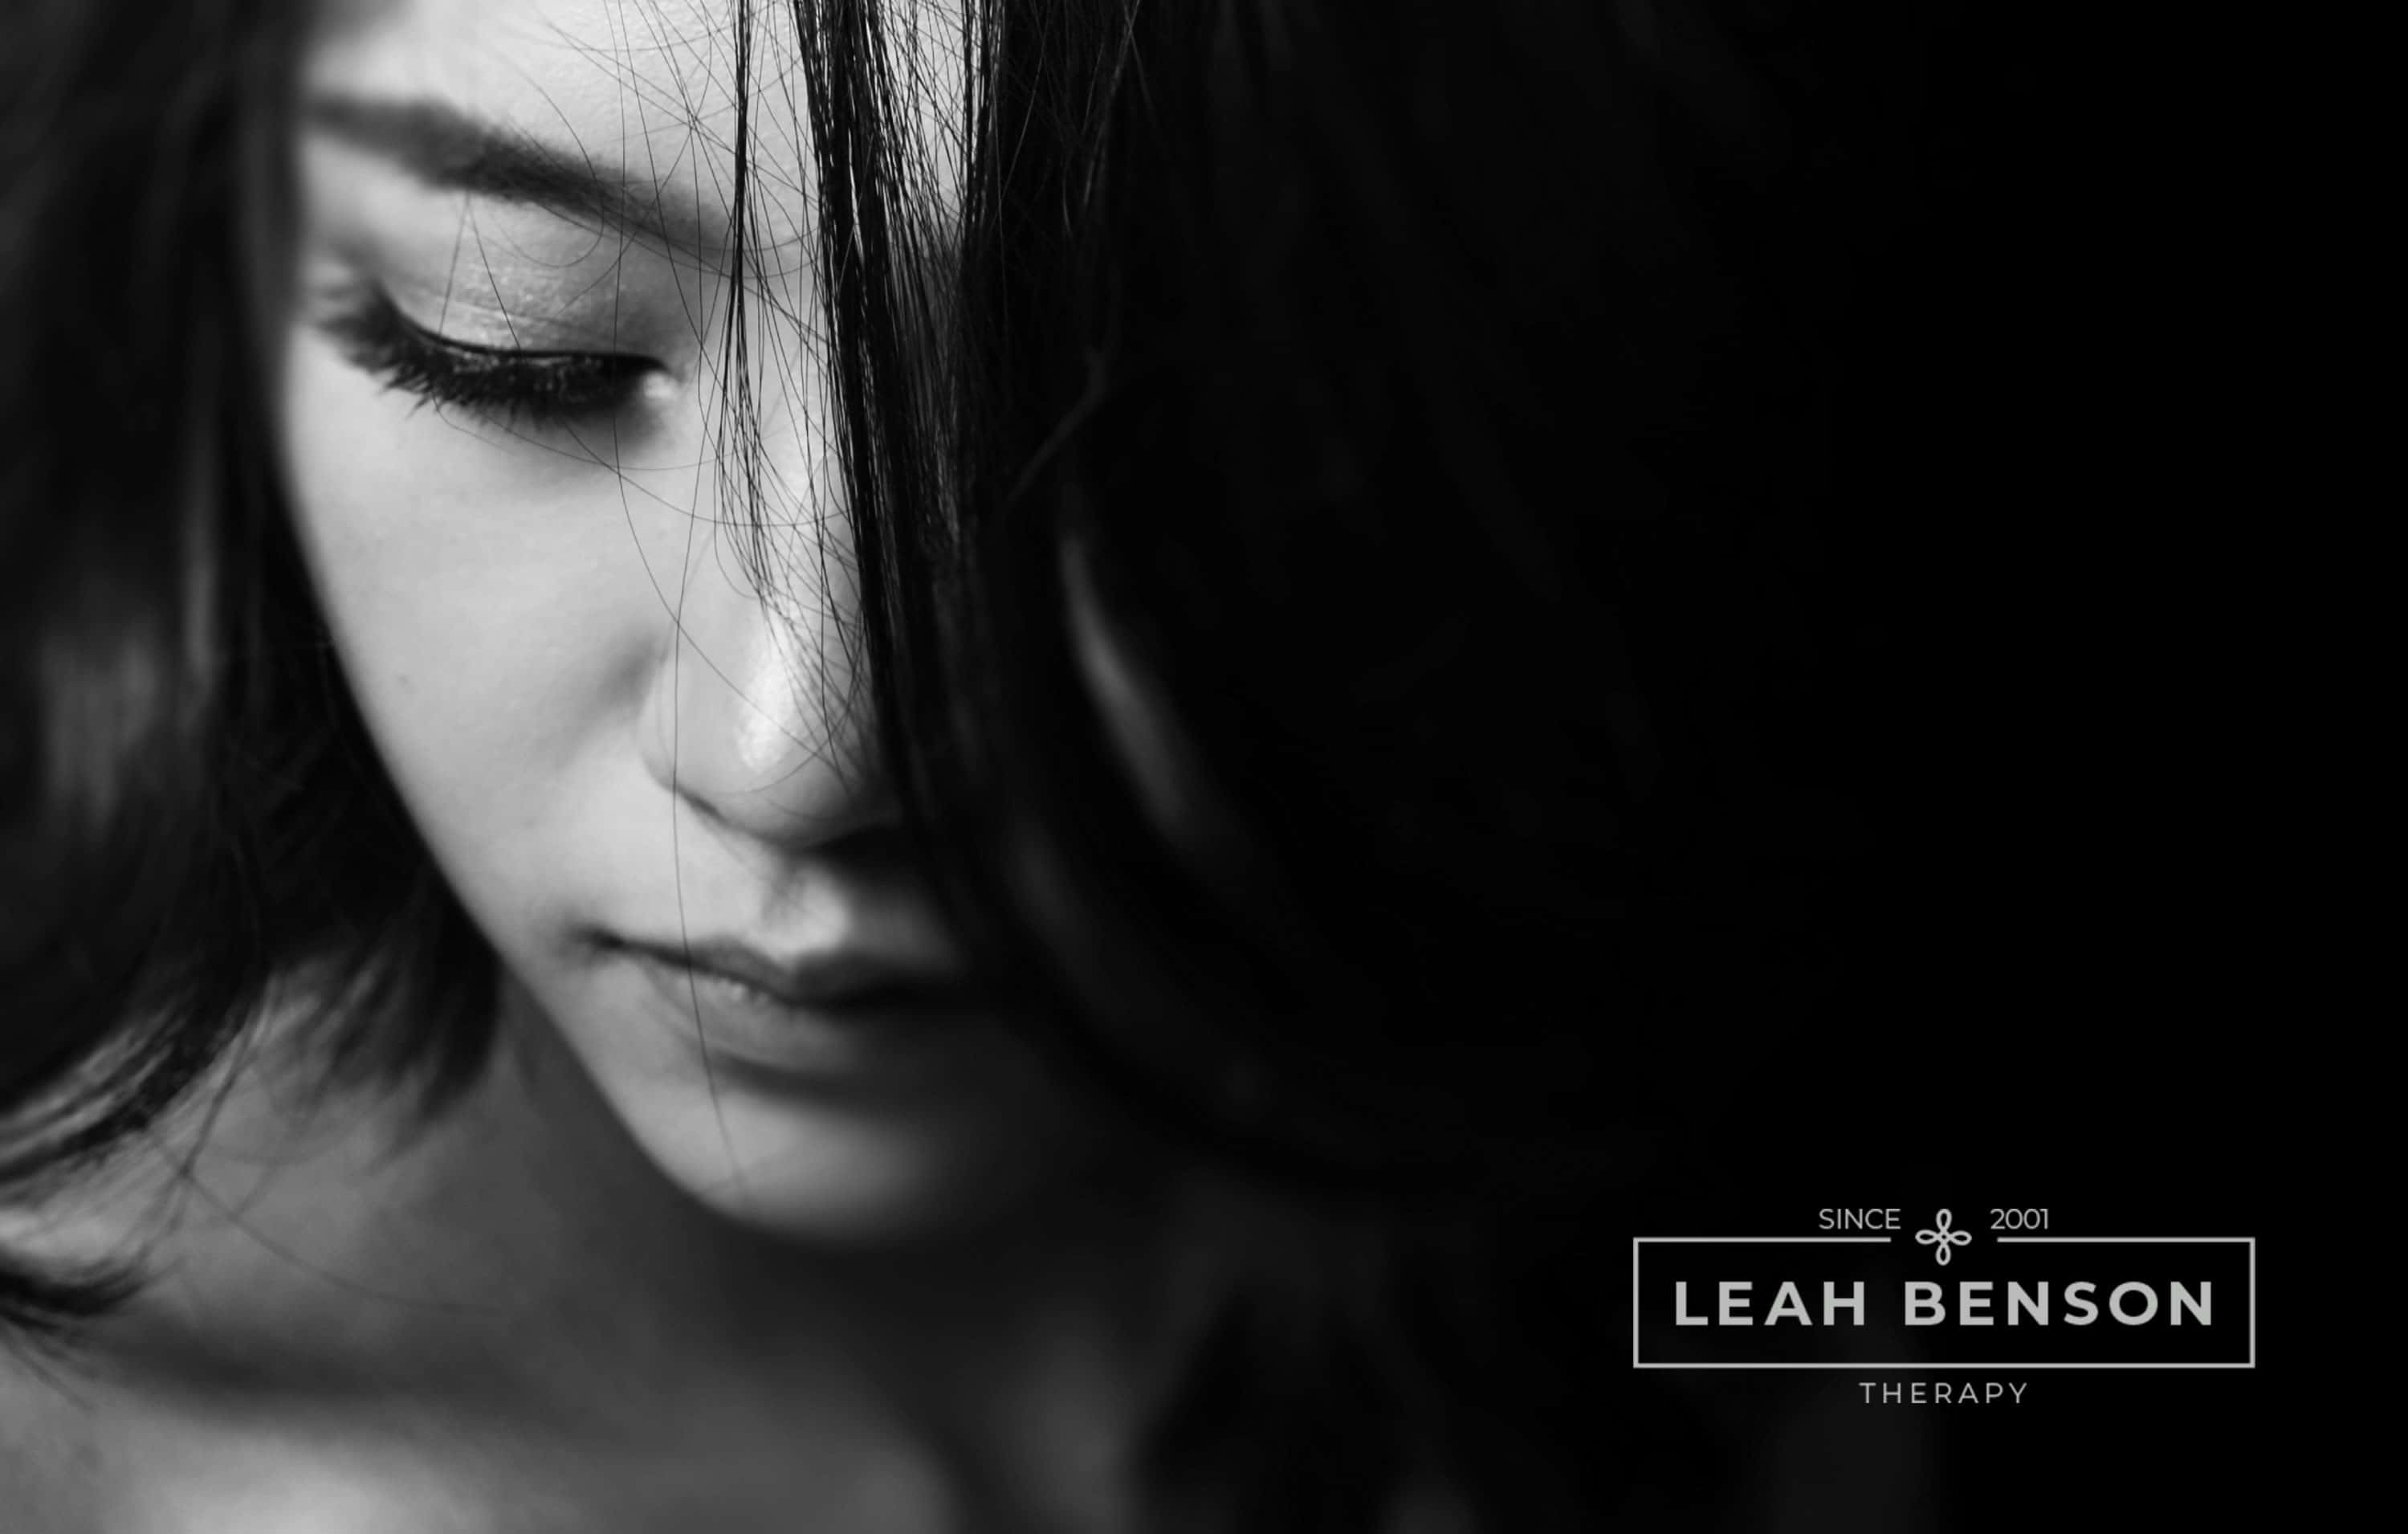 pensive attractive young women dealing with a breakup. LEAH BENSON THERAPY logo shown